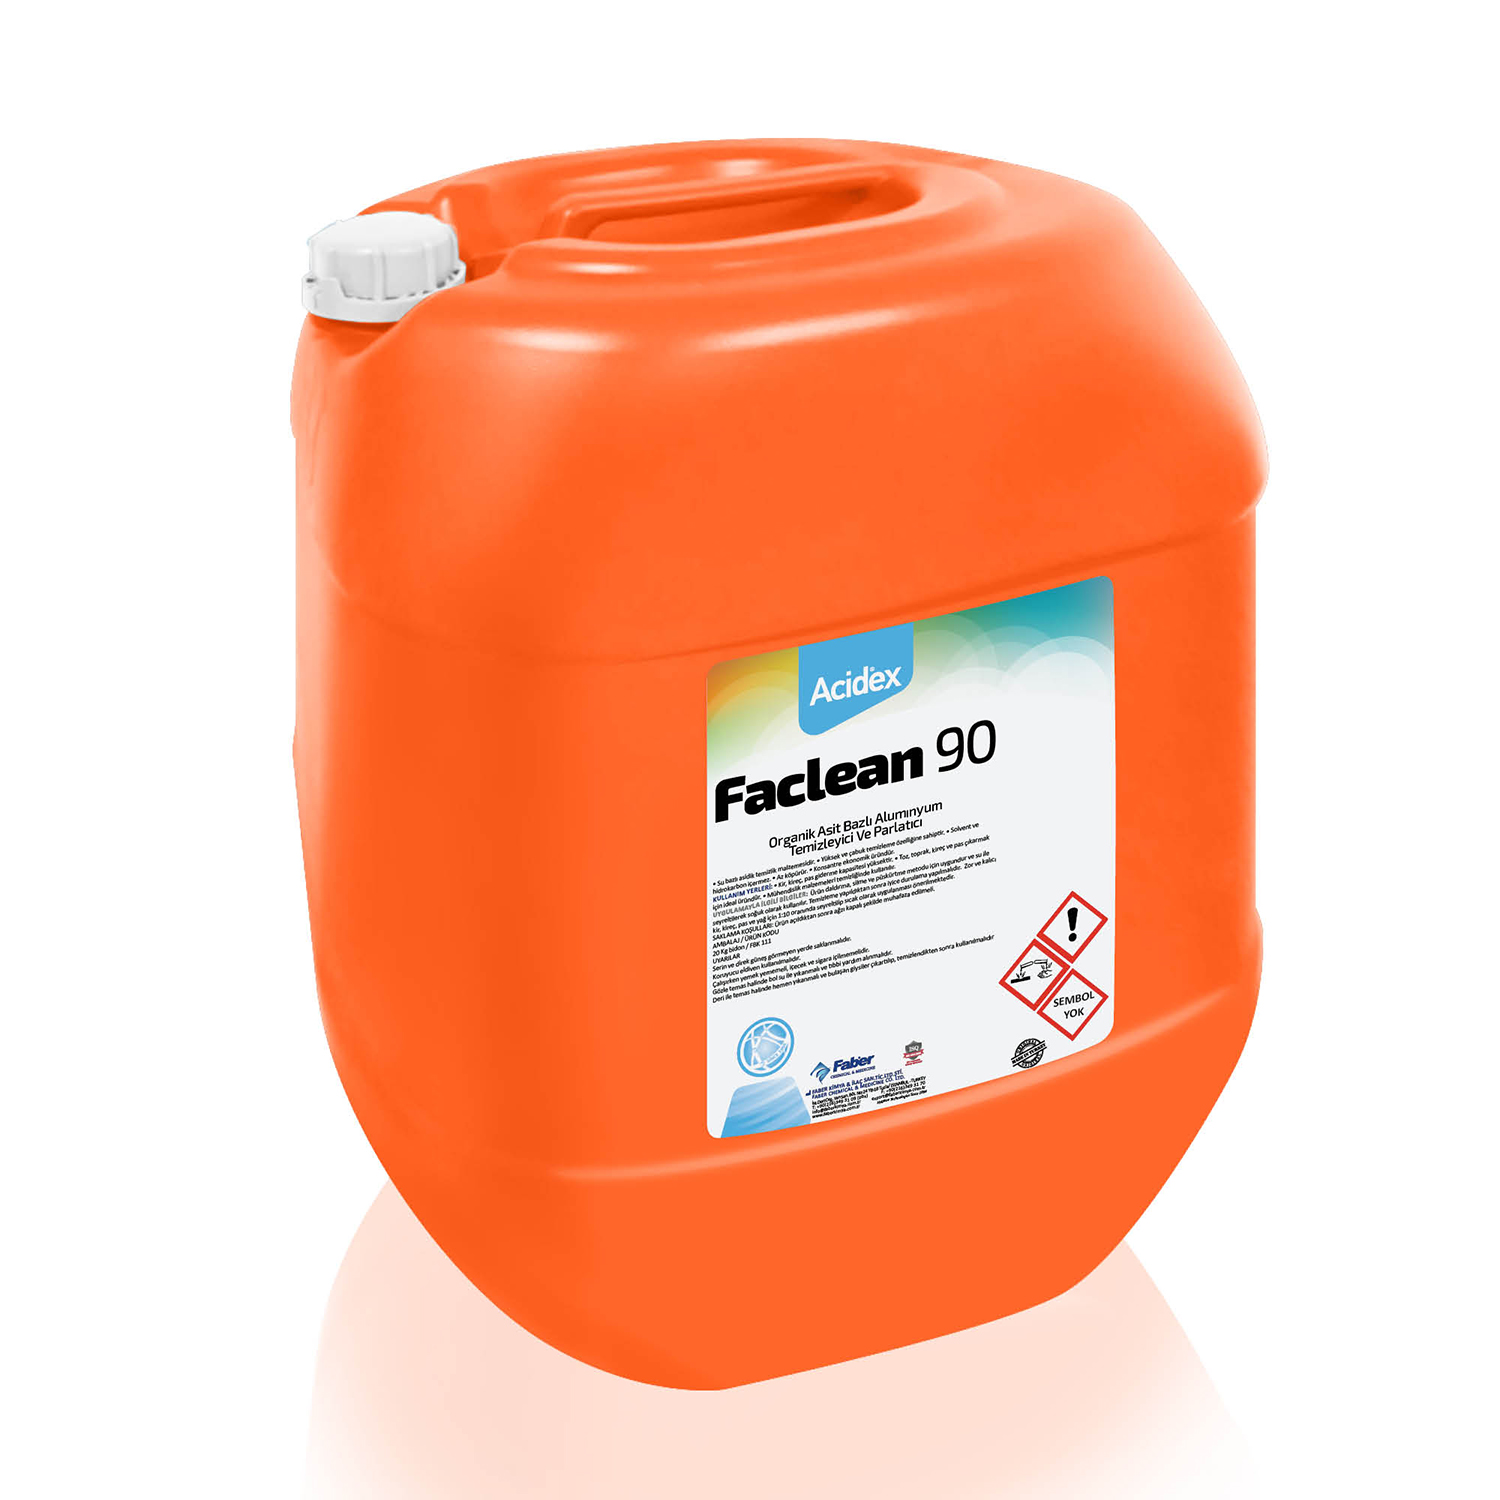 Acidex Faclean 90